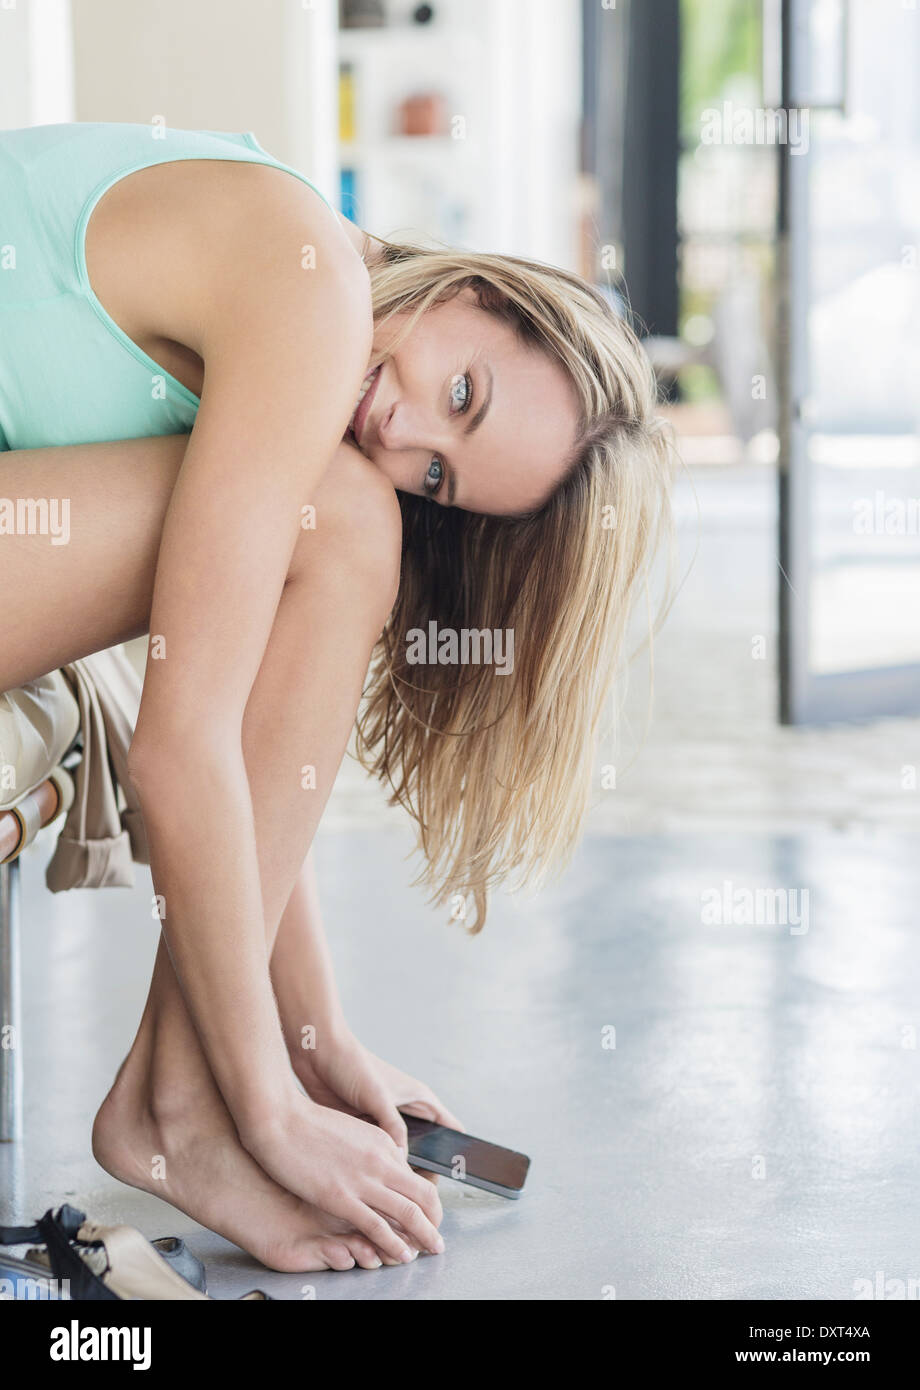 Portrait of woman leaning over legs - Stock Image